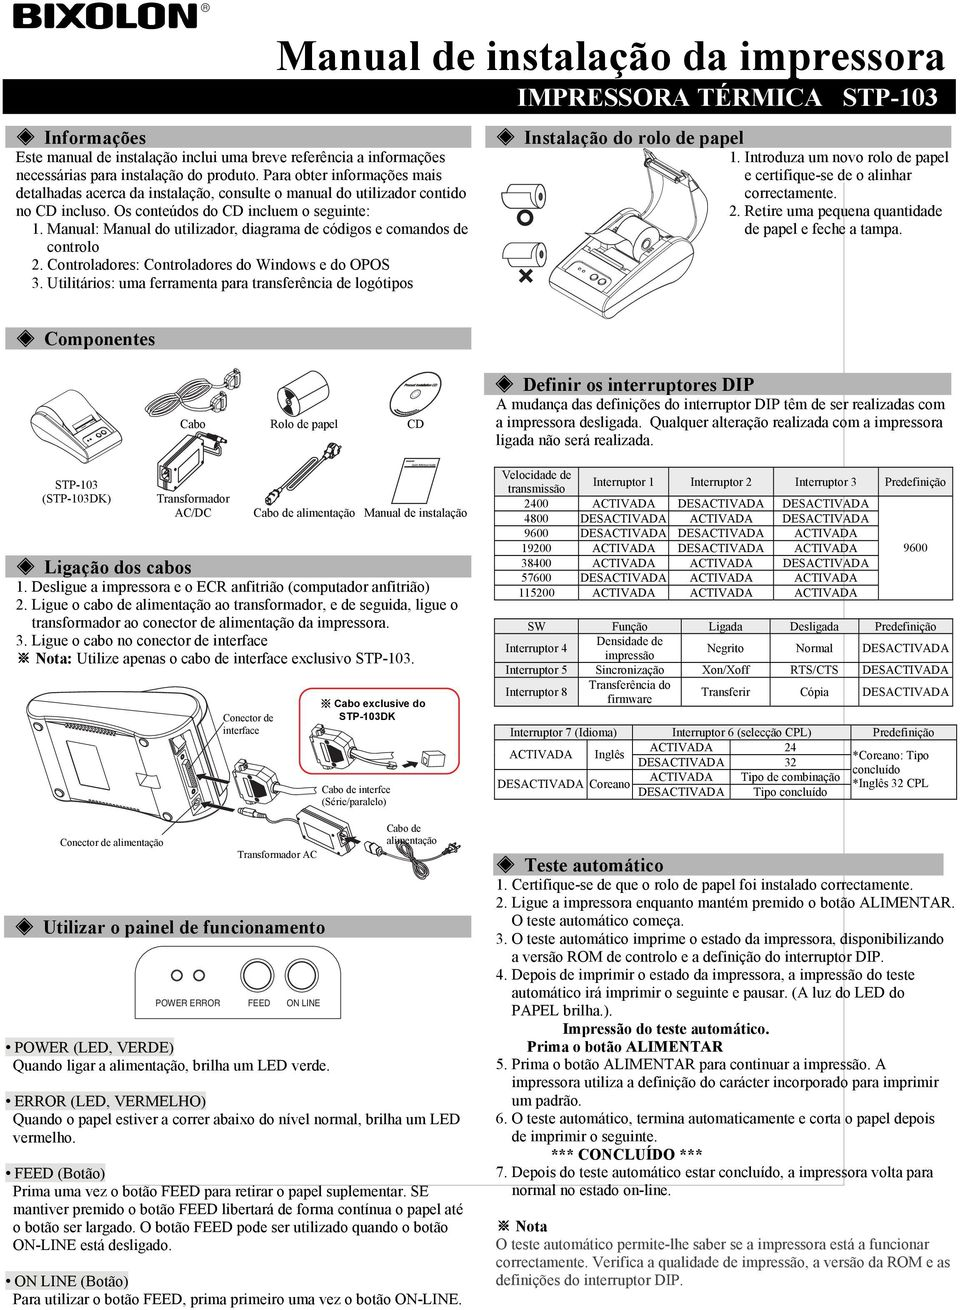 Manual: Manual do utilizador, diagrama de códigos e comandos de controlo 2. Controladores: Controladores do Windows e do OPOS 3.